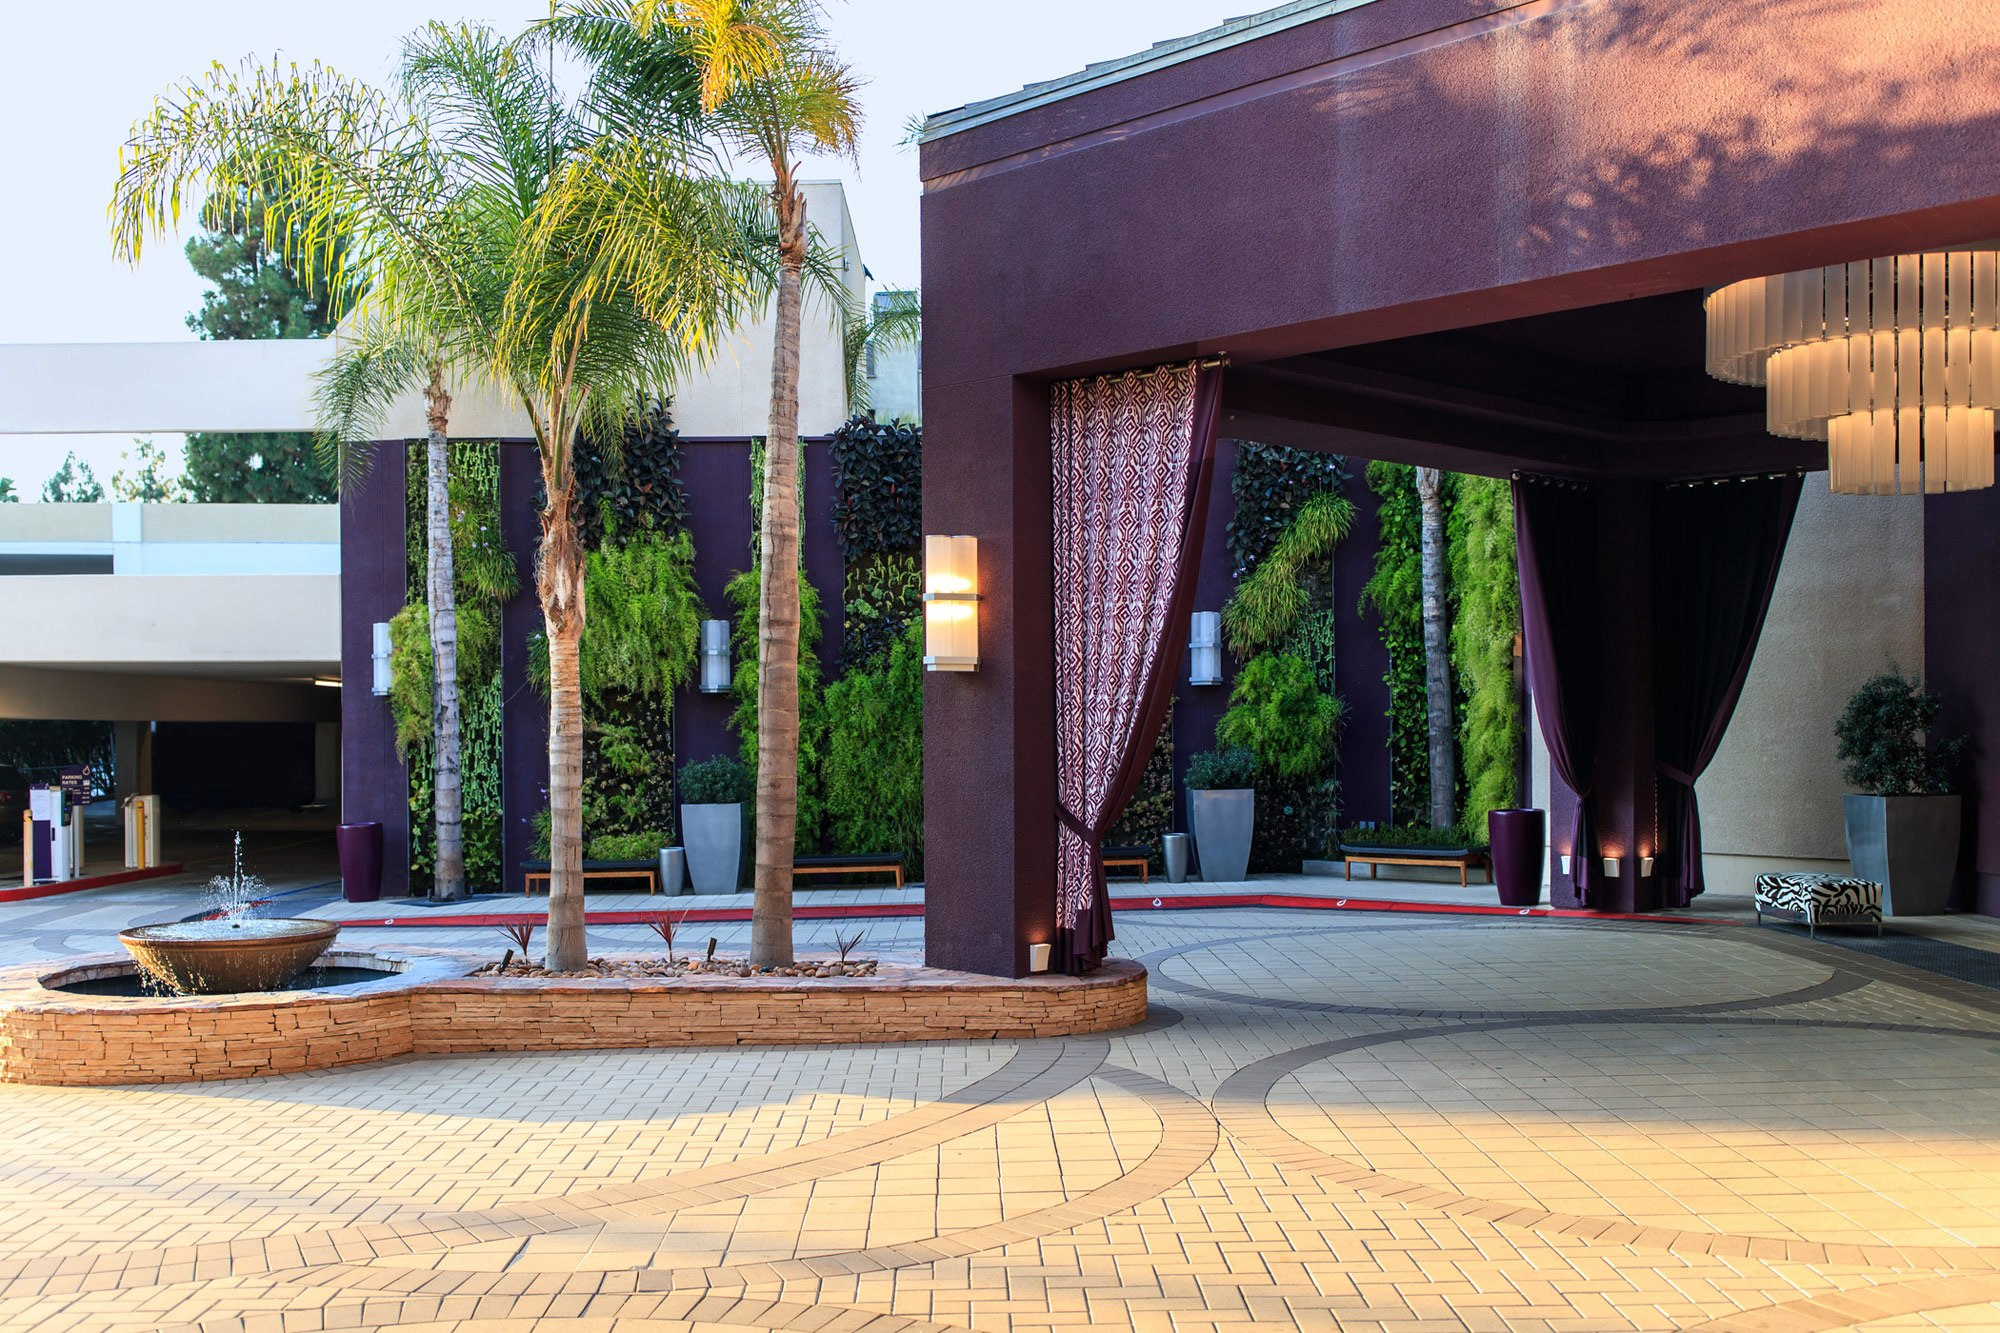 Port Cochere of Avenue of The Arts Costa Mesa